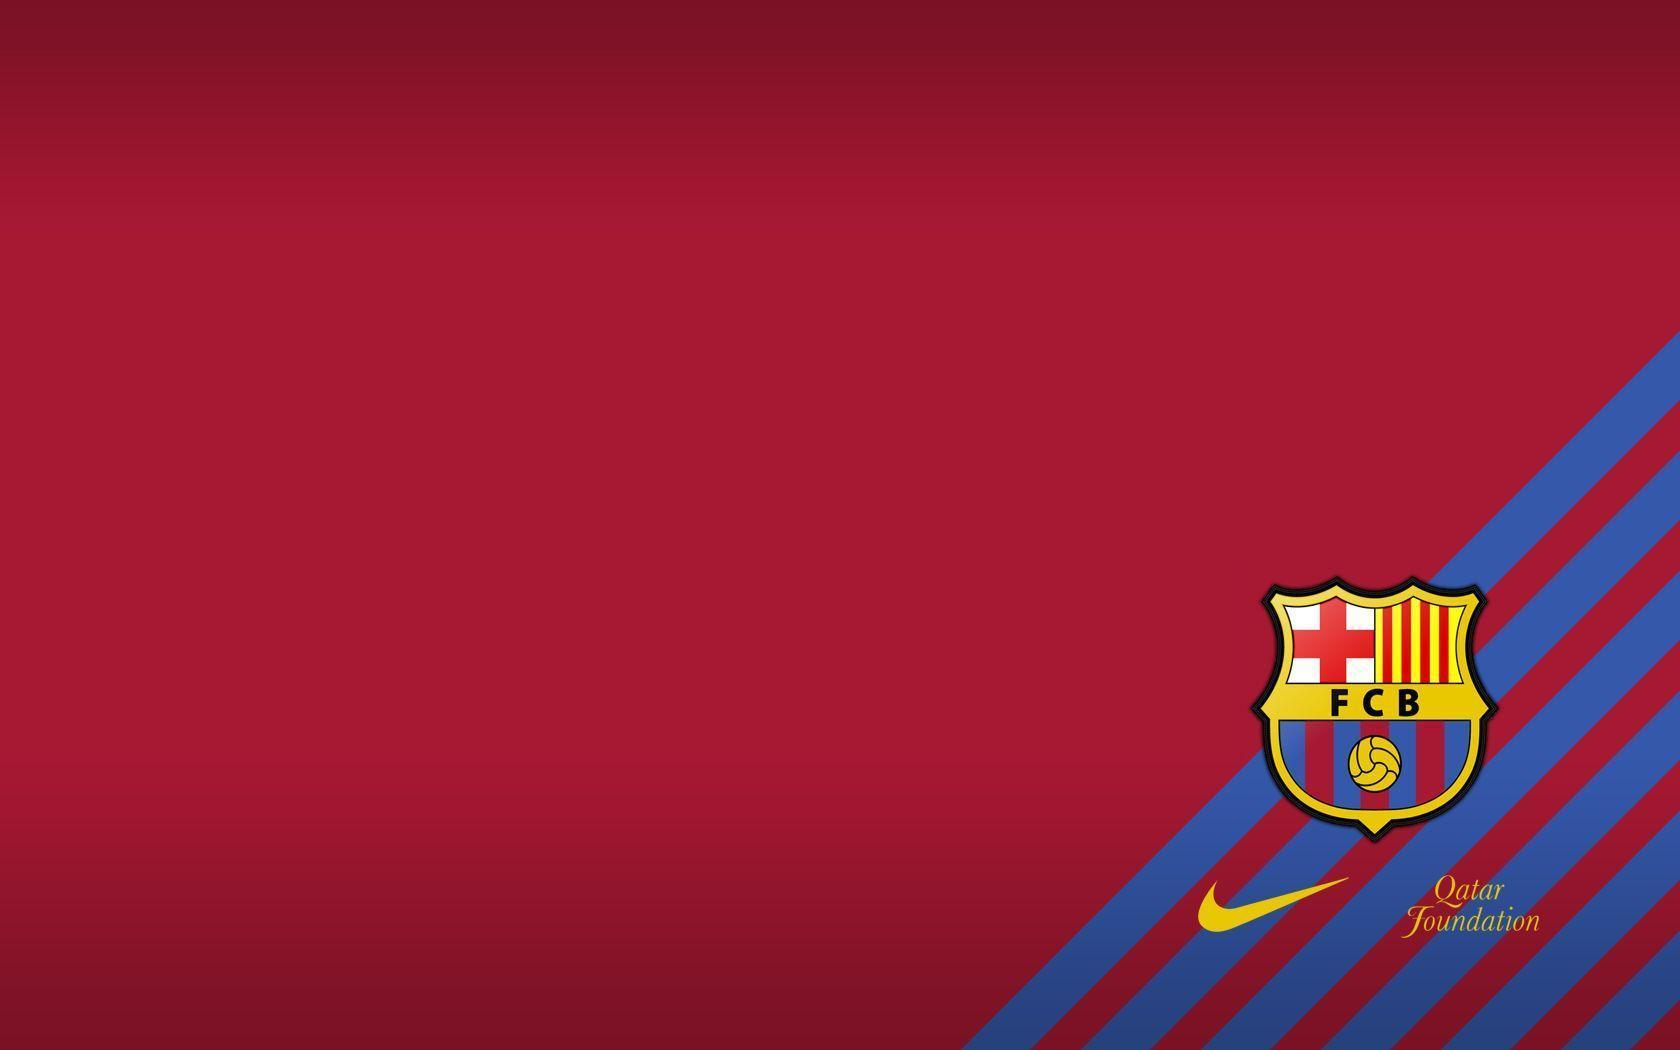 FC Barcelona Wallpapers HD (37) - Download Free Wallpapers HD